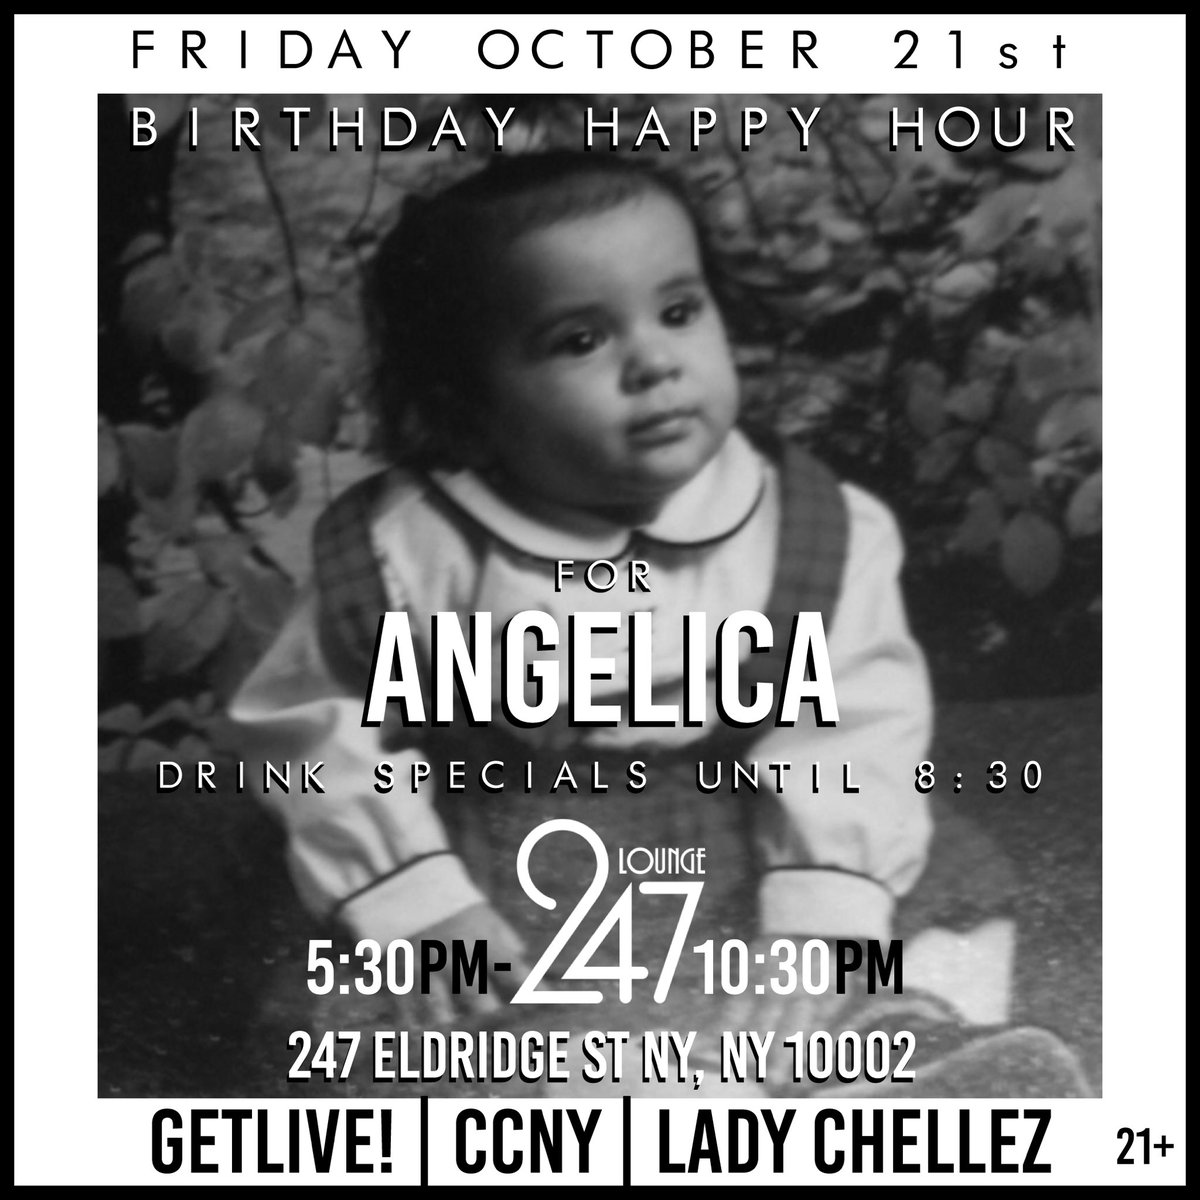 Next Friday 10/21, come out to Lounge 247 at 5:30pm to celebrate w/ me with a happy hour birthday fiesta https://t.co/ZizymC1xia